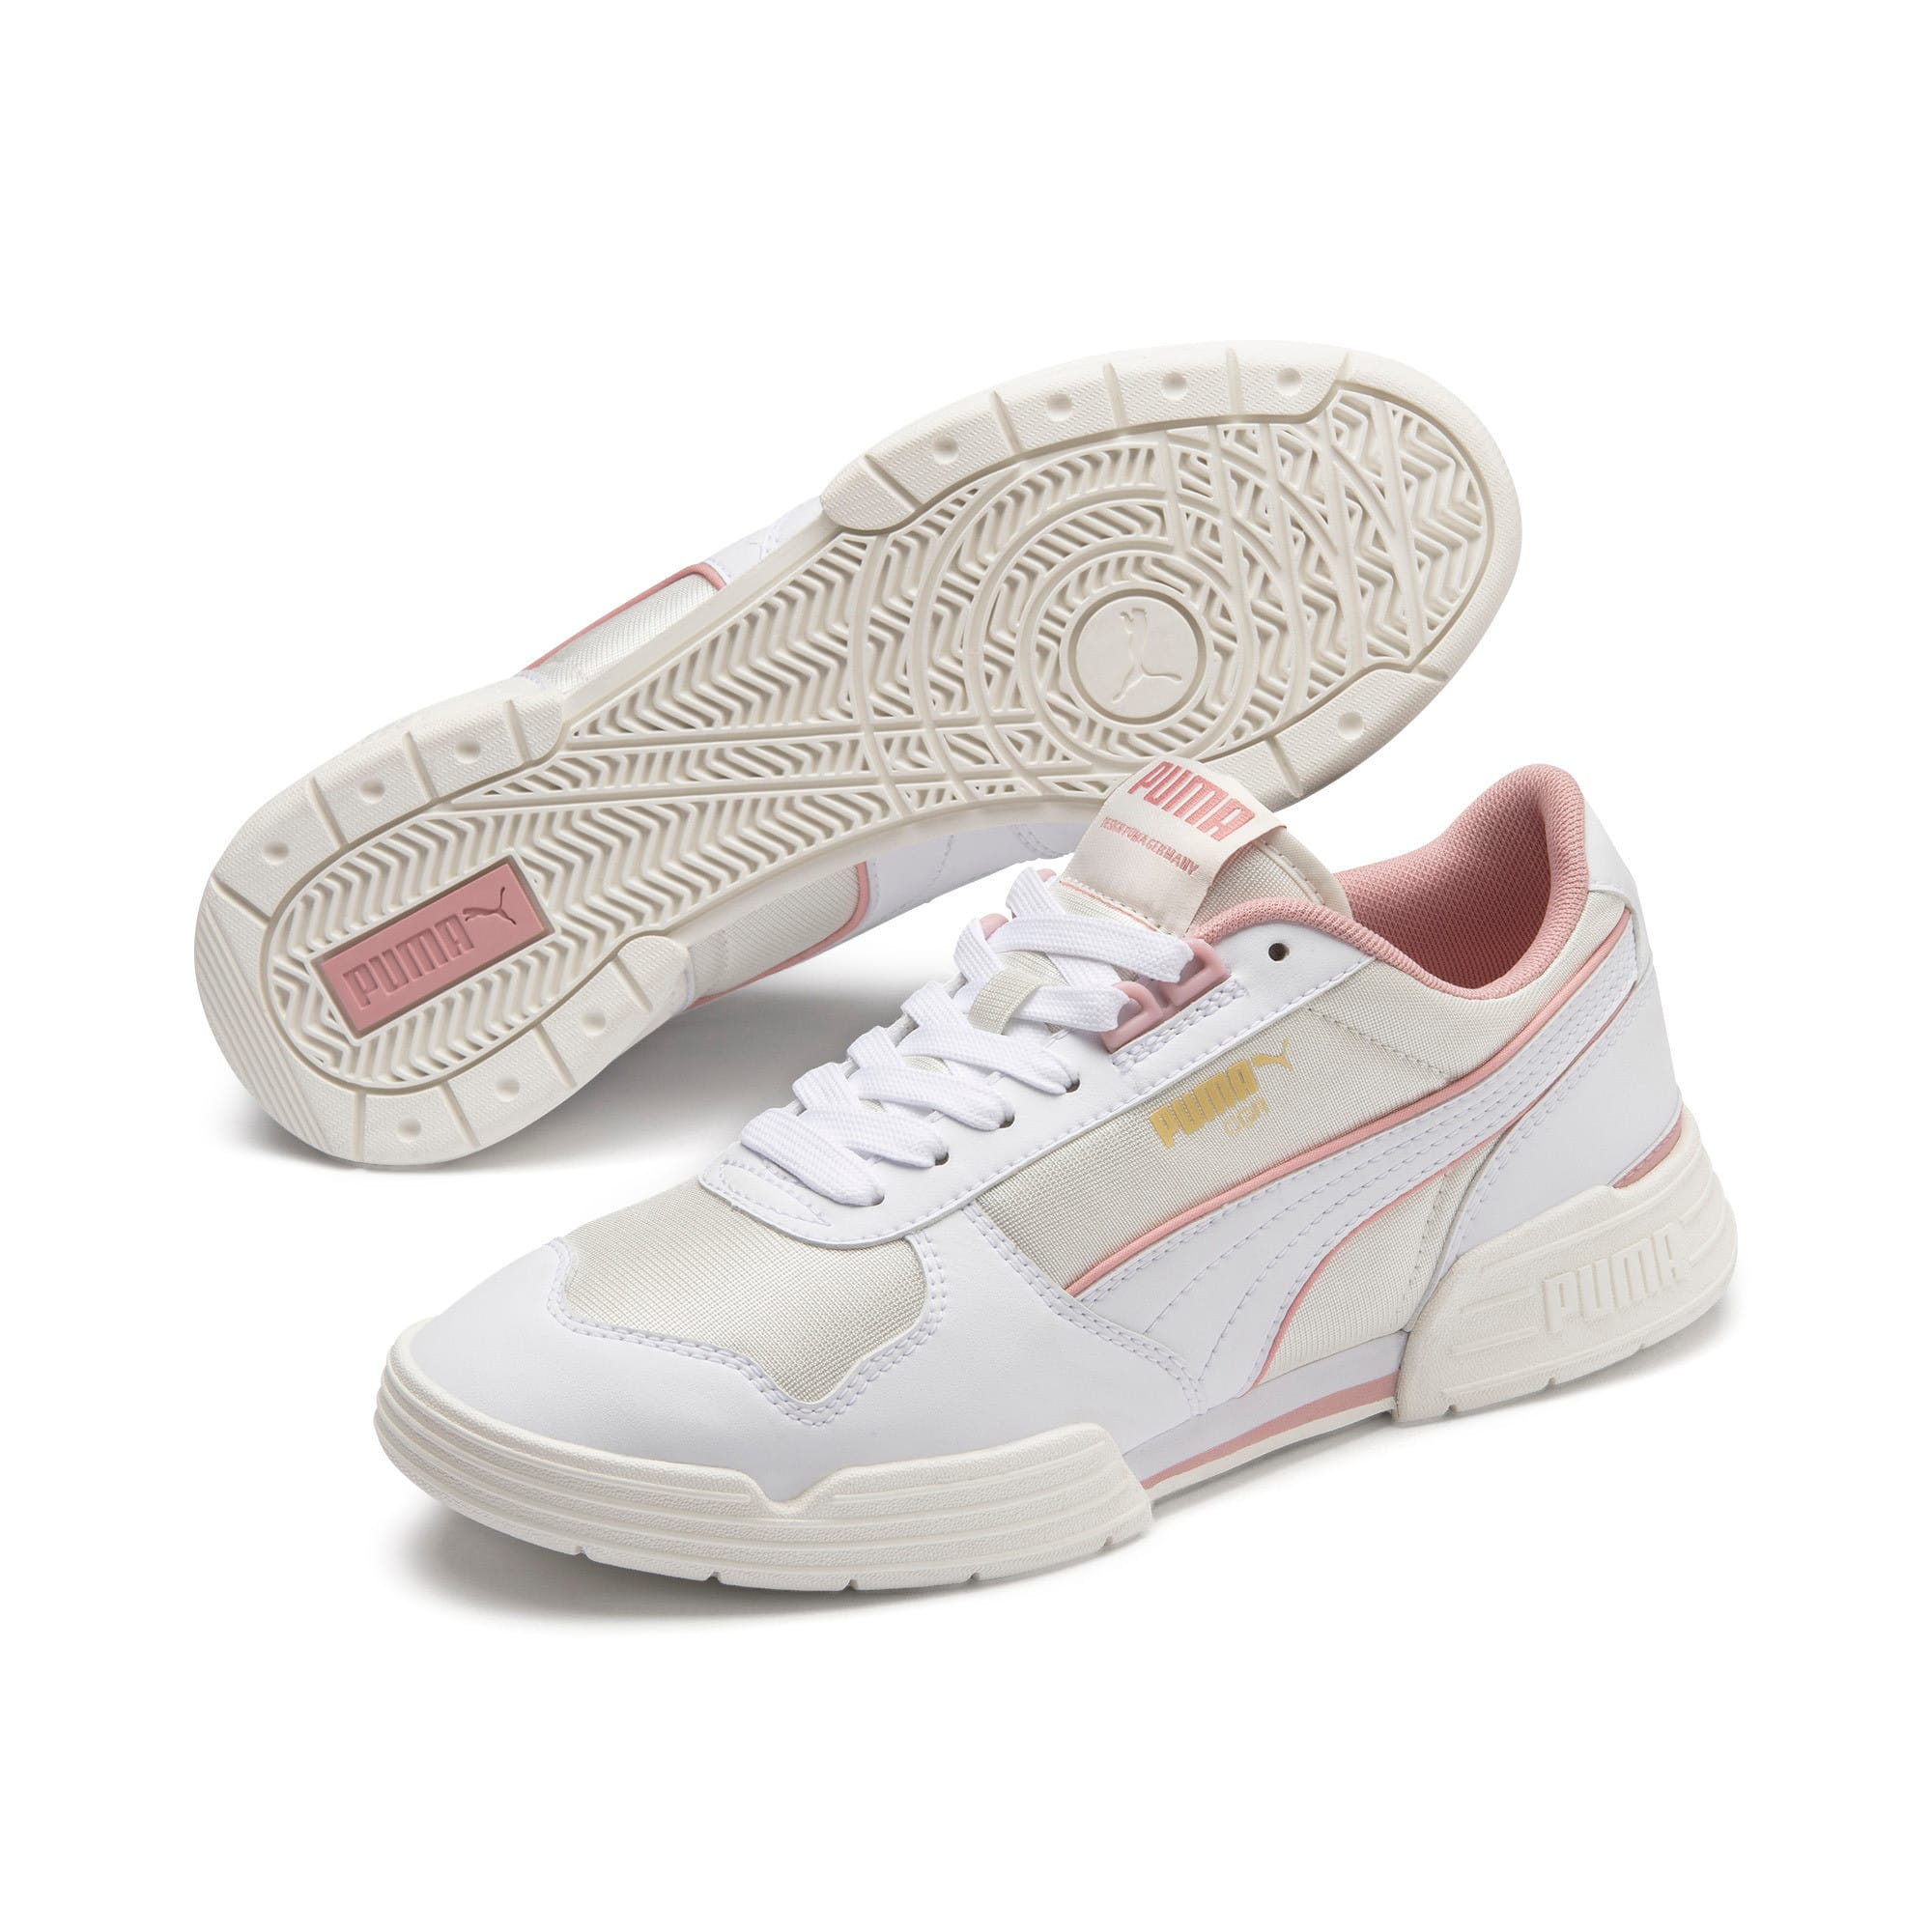 Thumbnail 4 of CGR Original Trainers, PWht-Bridal Rose-Marshmallow, medium-IND